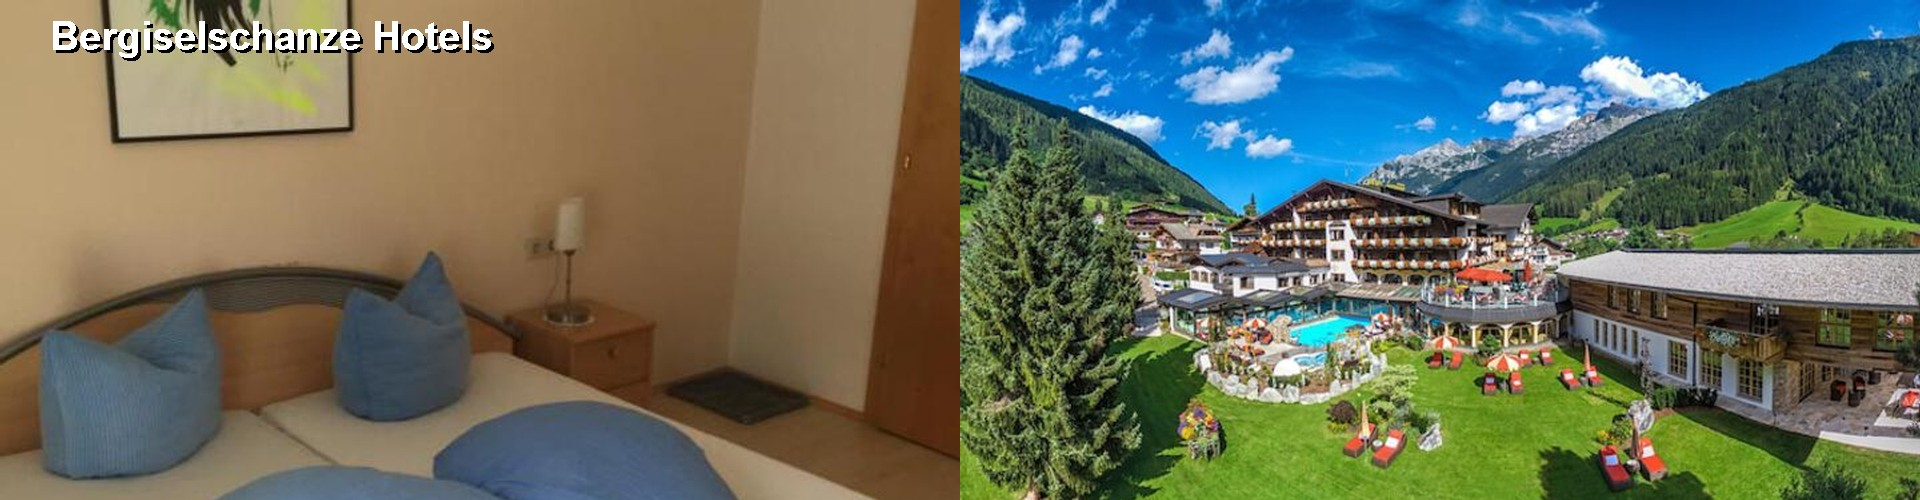 5 Best Hotels near Bergiselschanze